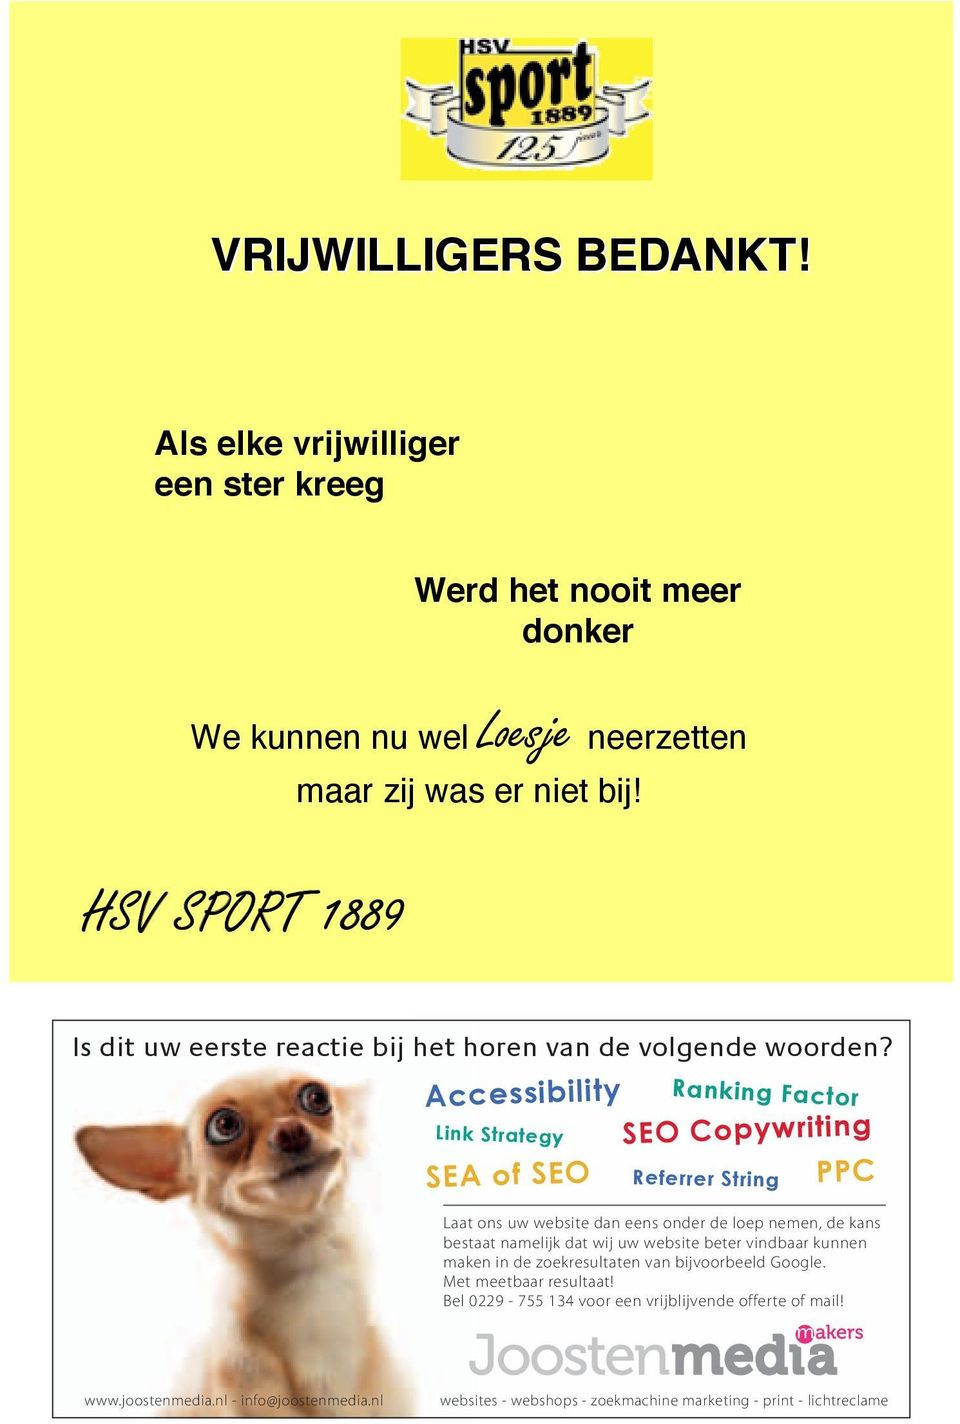 Accessibility Link Strategy Ranking Factor SEO Copywriting SEA of SEO PPC Referrer String Laat ons uw website dan eens onder de loep nemen, de kans bestaat namelijk dat